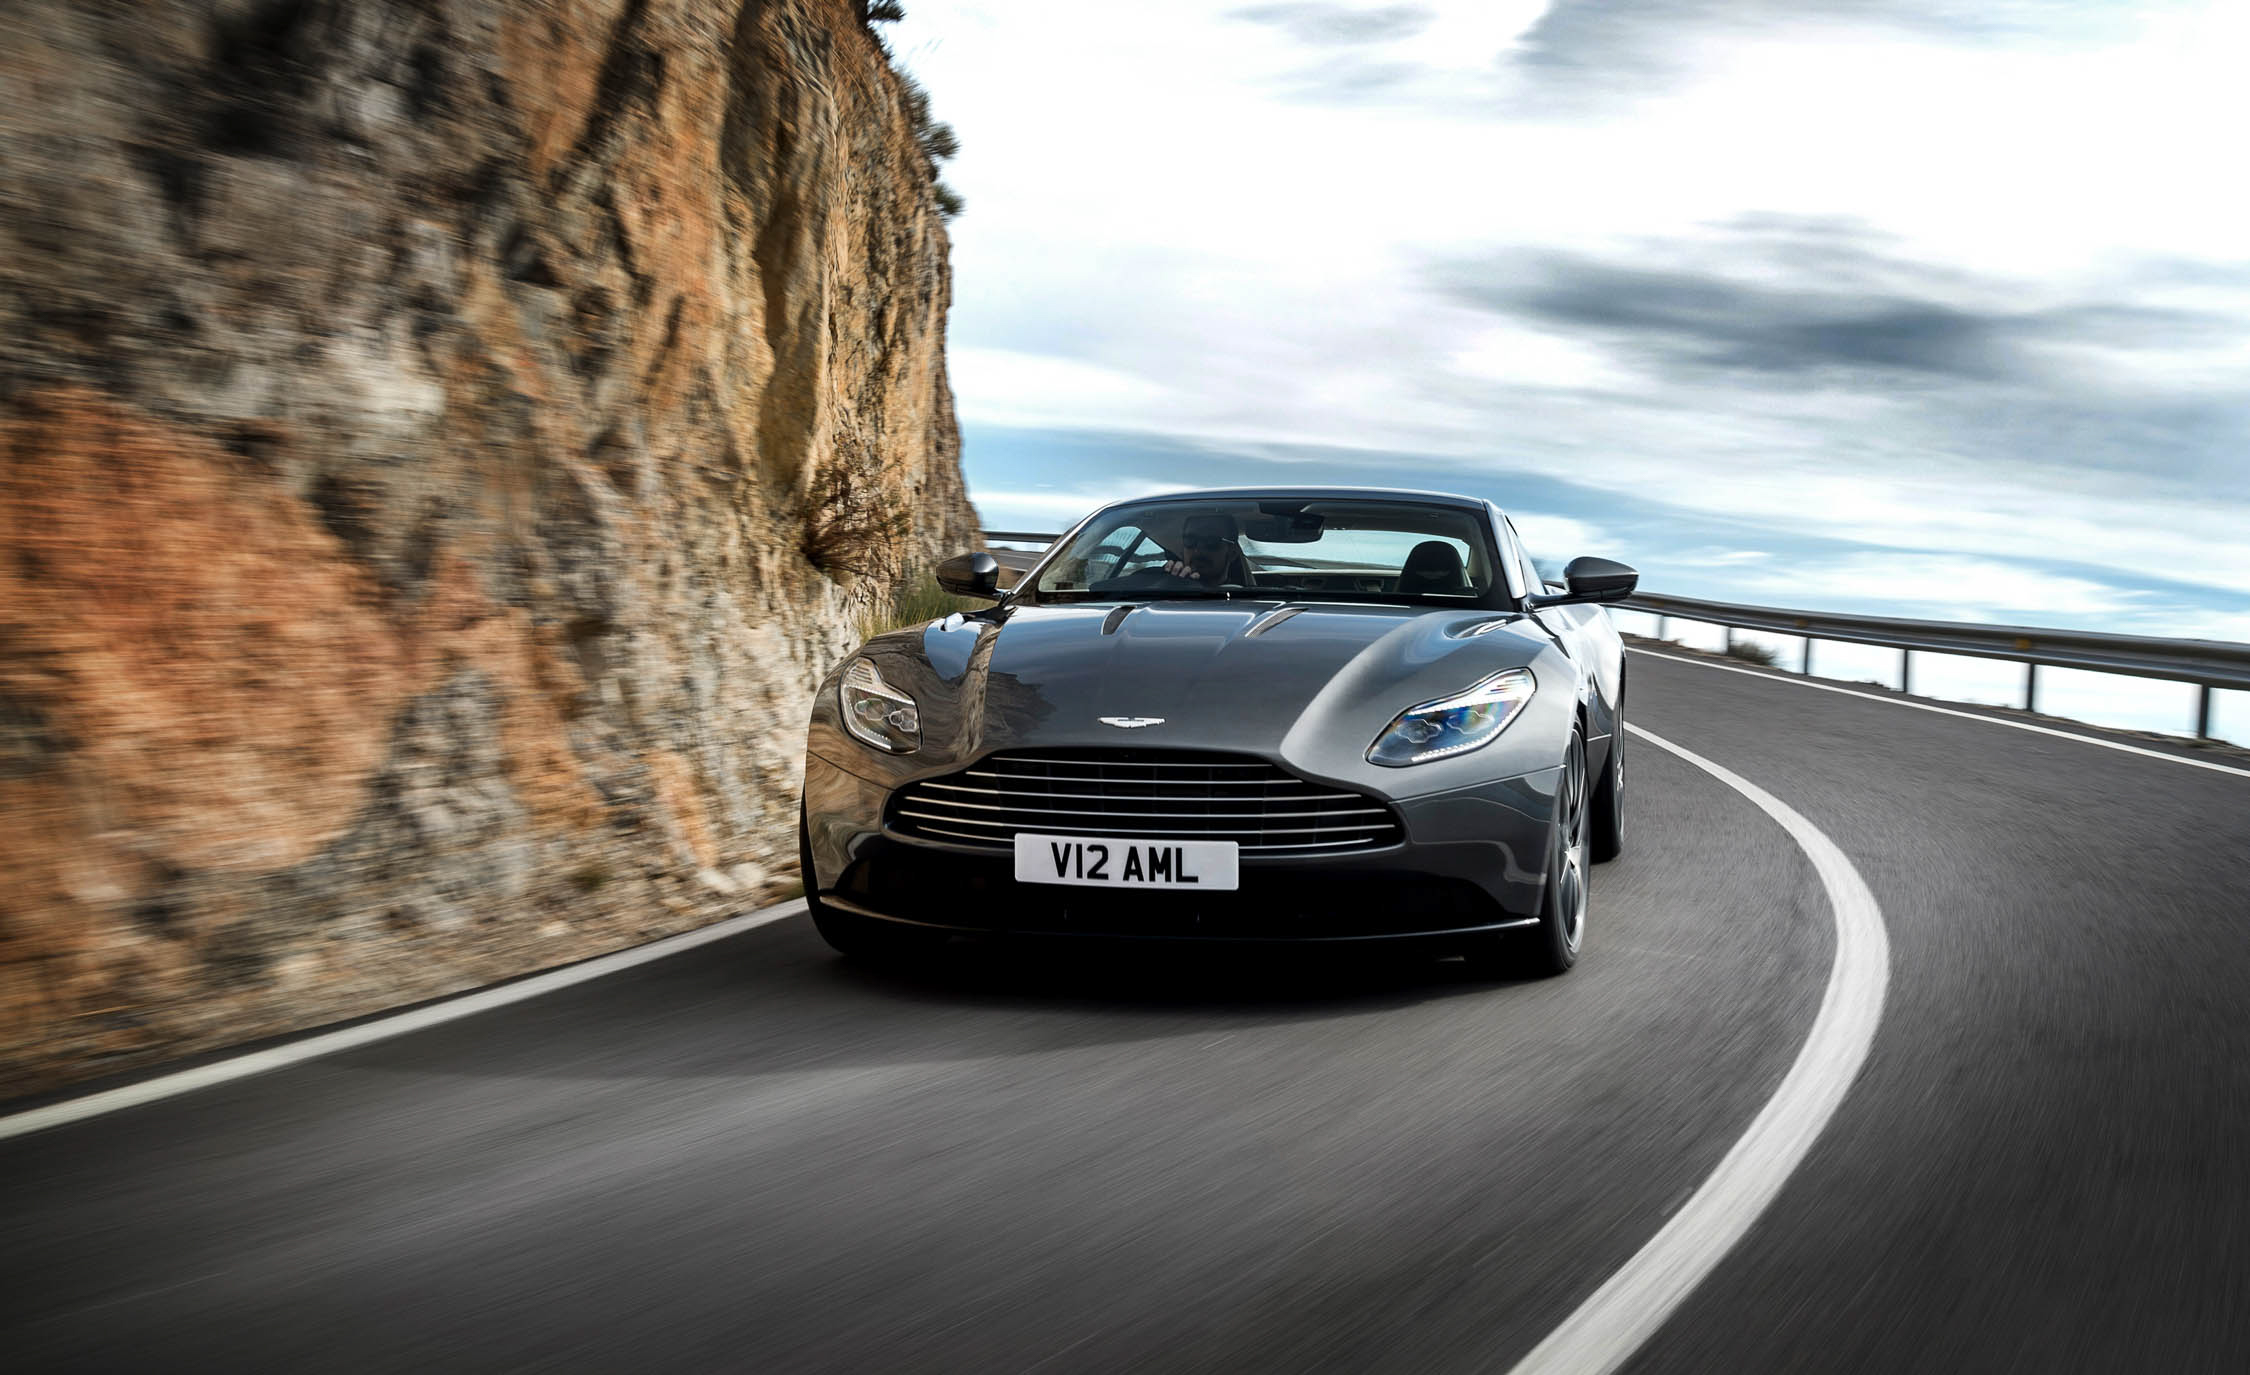 2017 Aston Martin Db11 Test Drive (View 5 of 22)